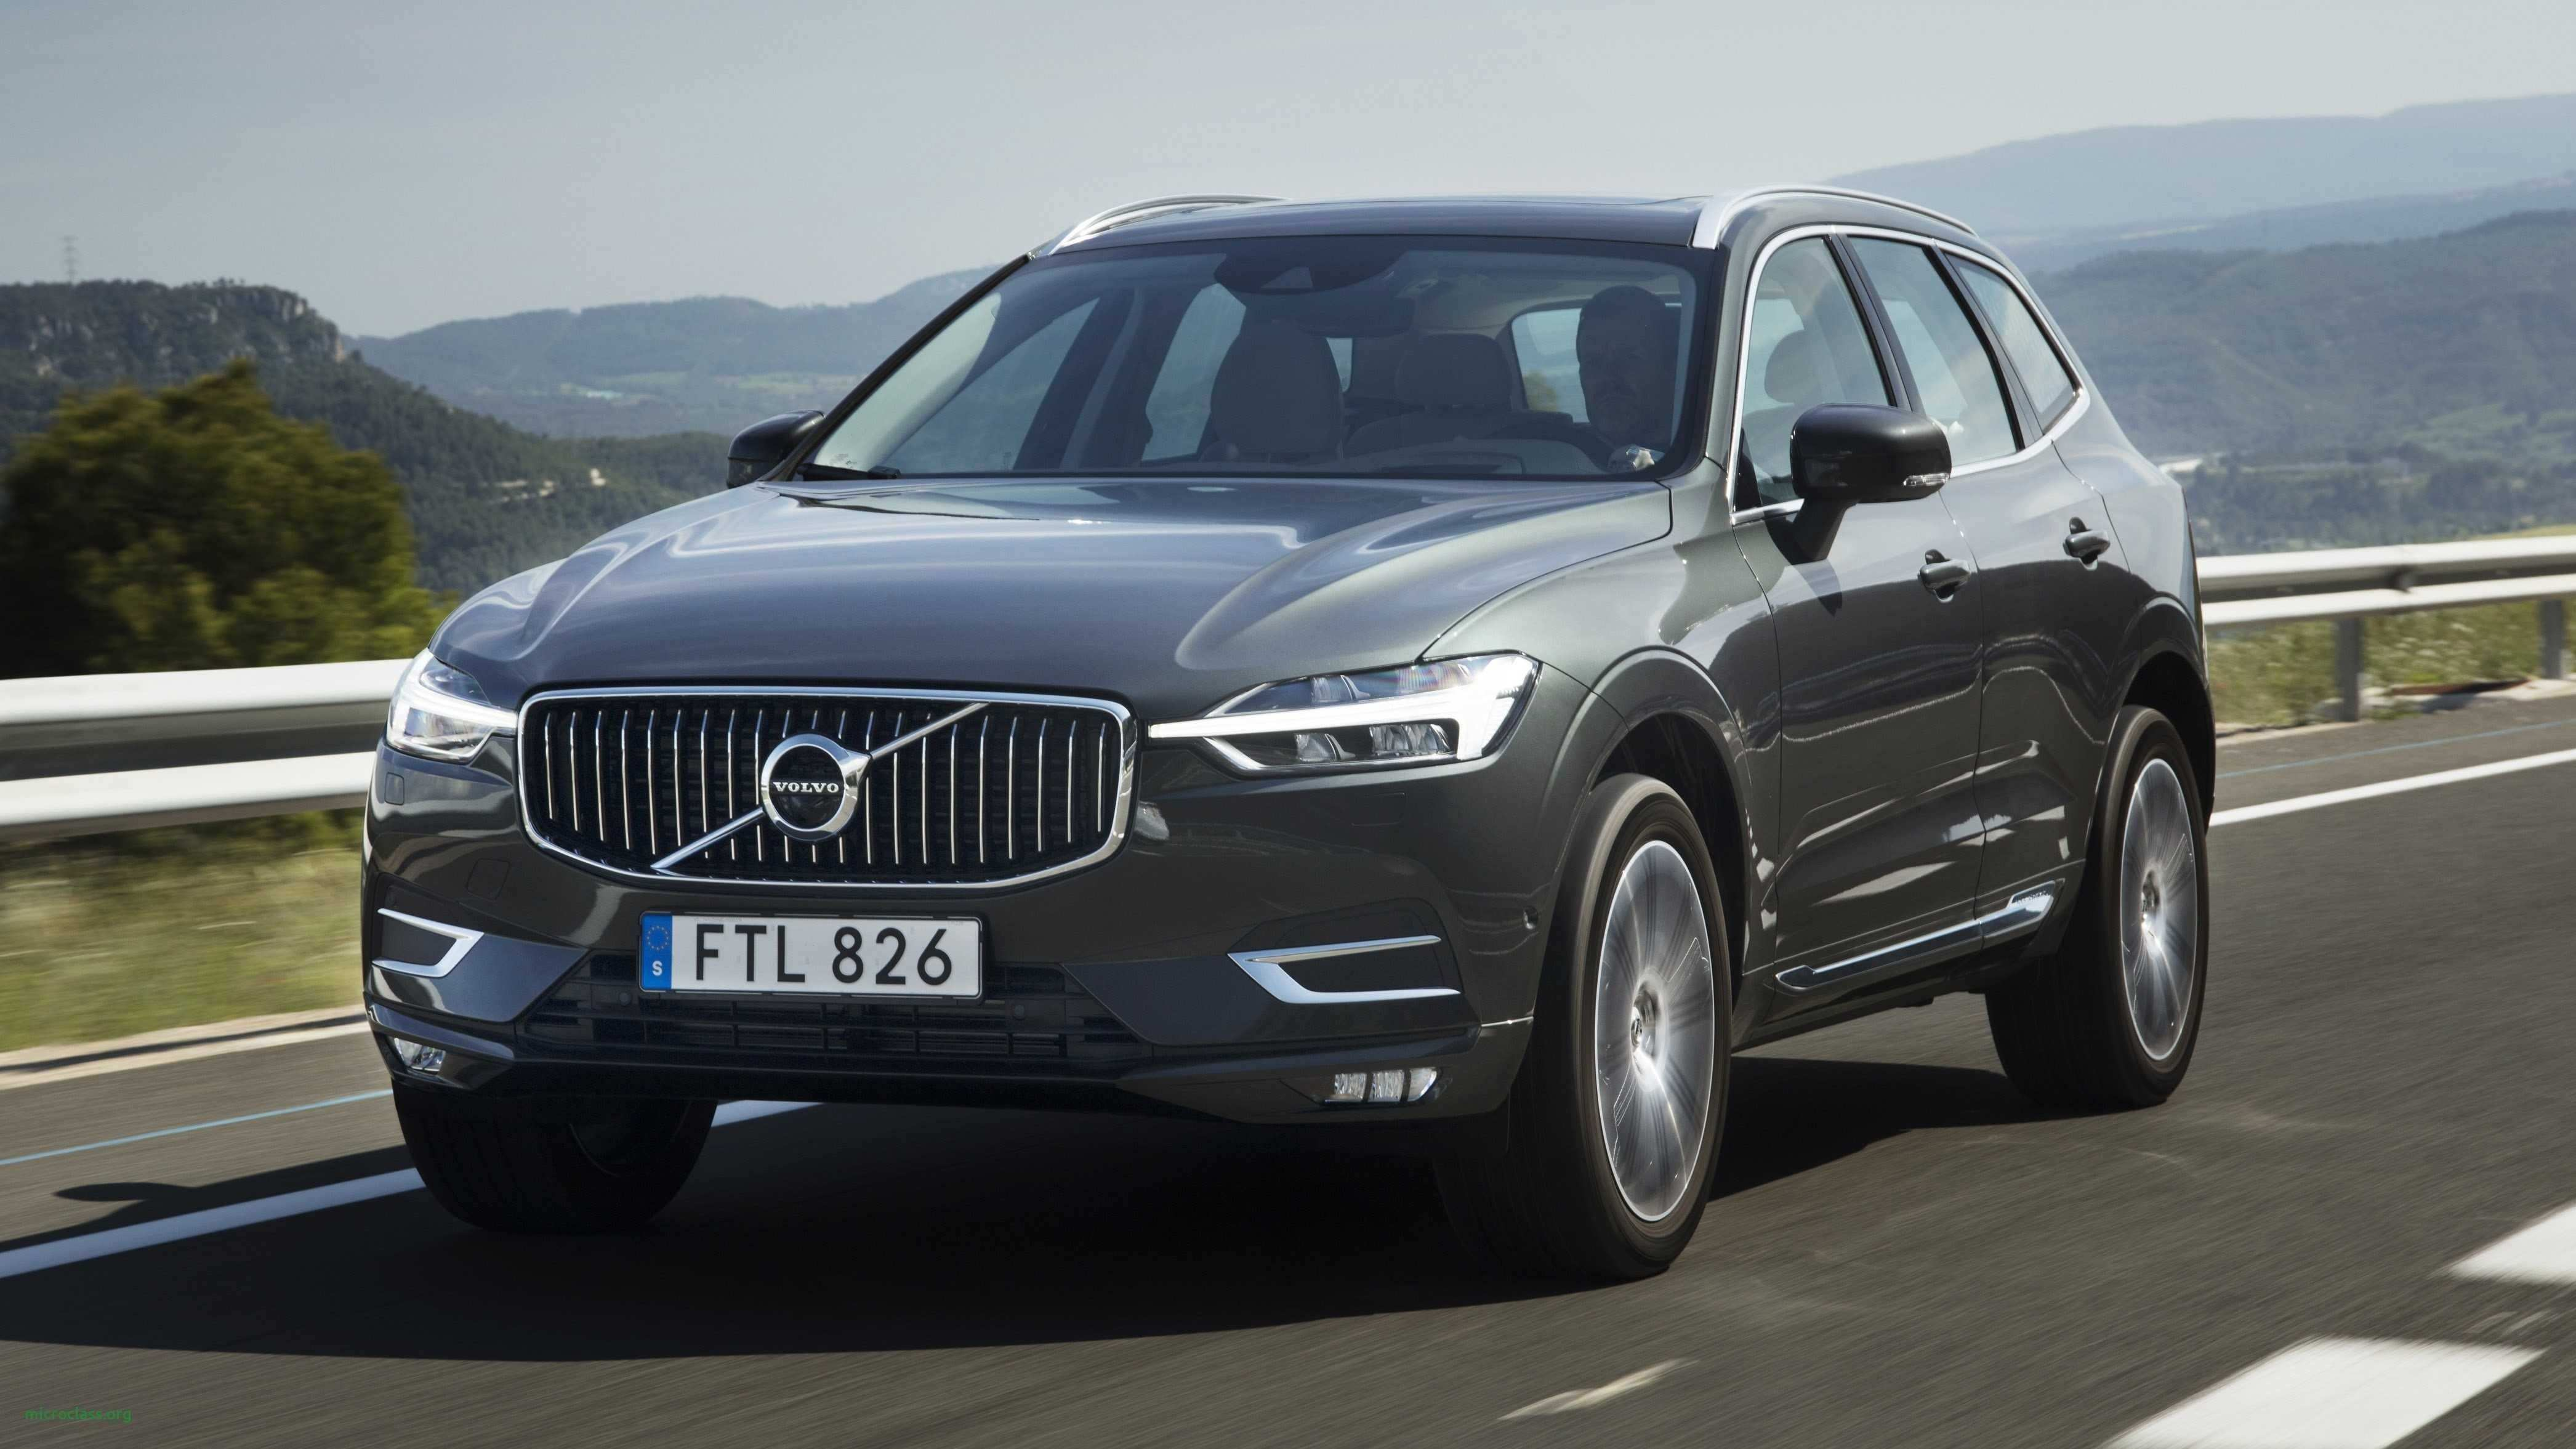 59 New Best Volvo 2019 Xc90 Release Date And Specs Concept by Best Volvo 2019 Xc90 Release Date And Specs